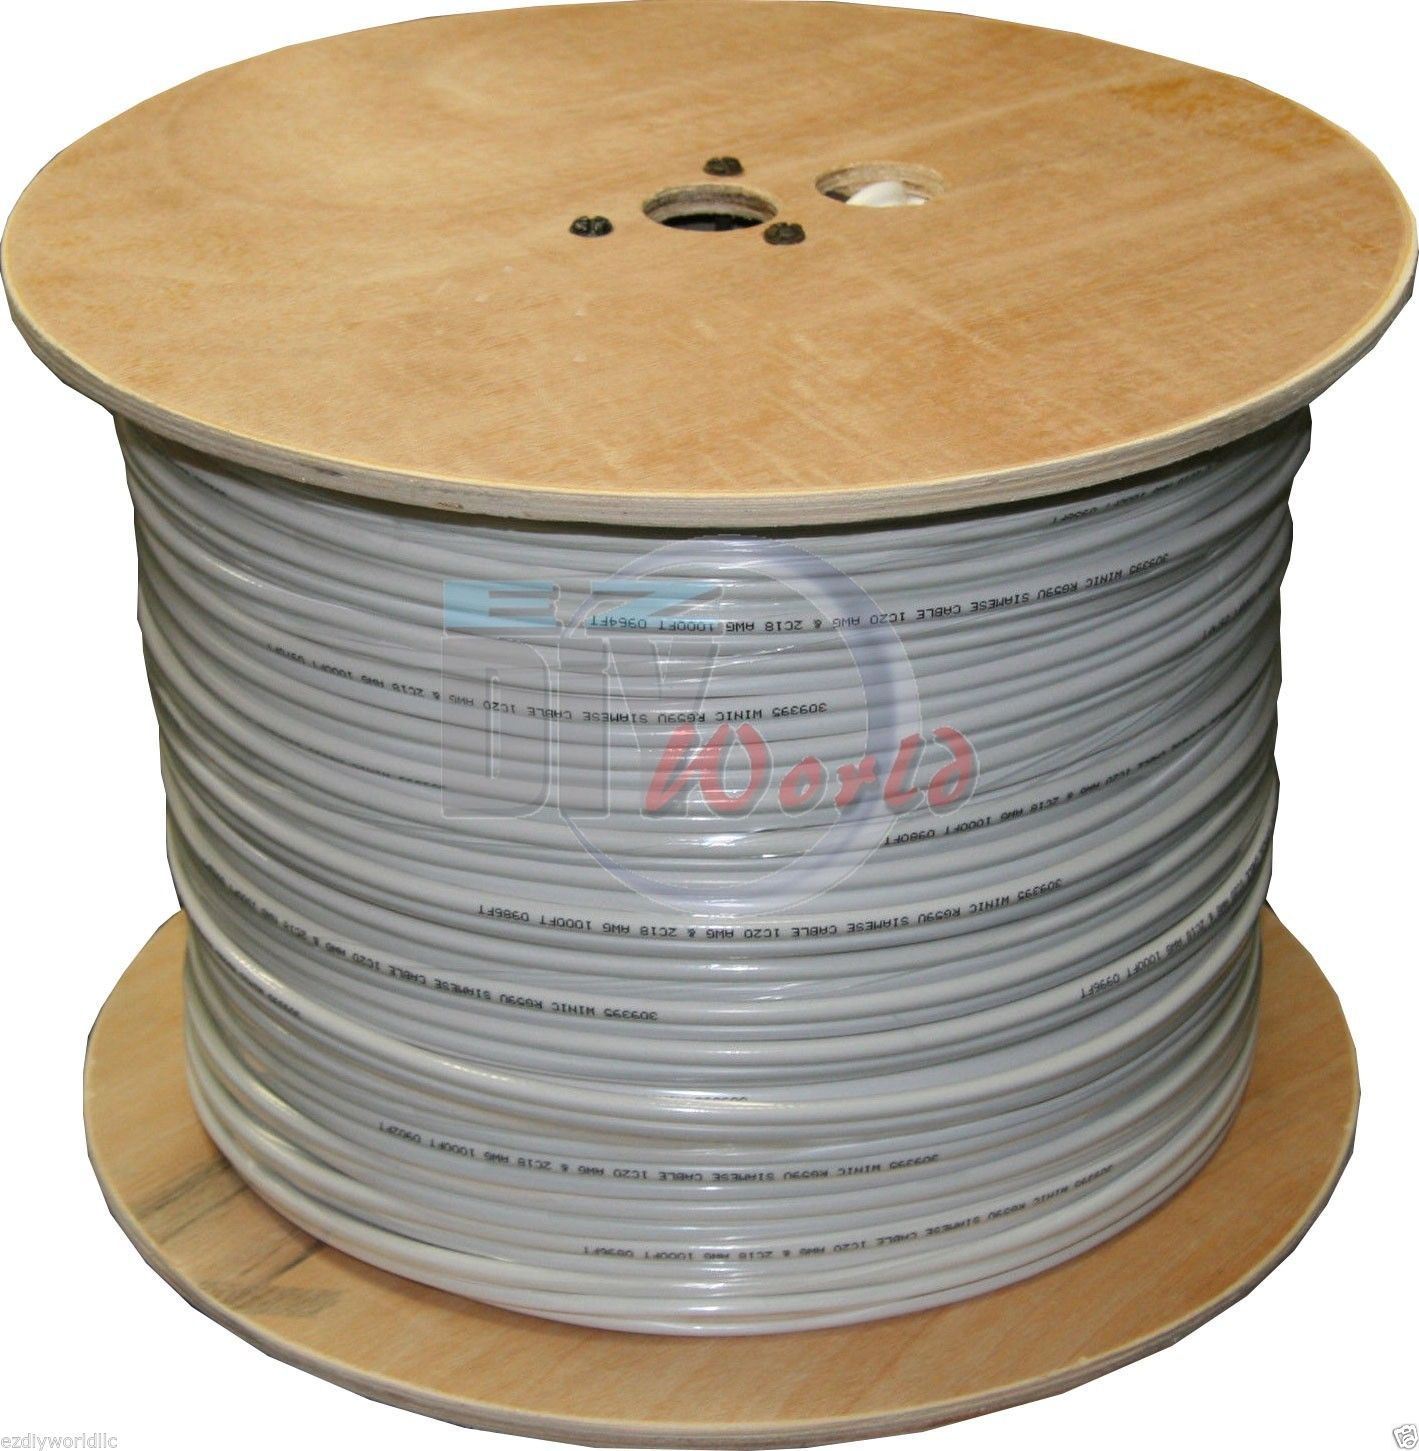 Solid Copper Core 1000 ft spool RG59 Siamese Cable CCTV Video-W